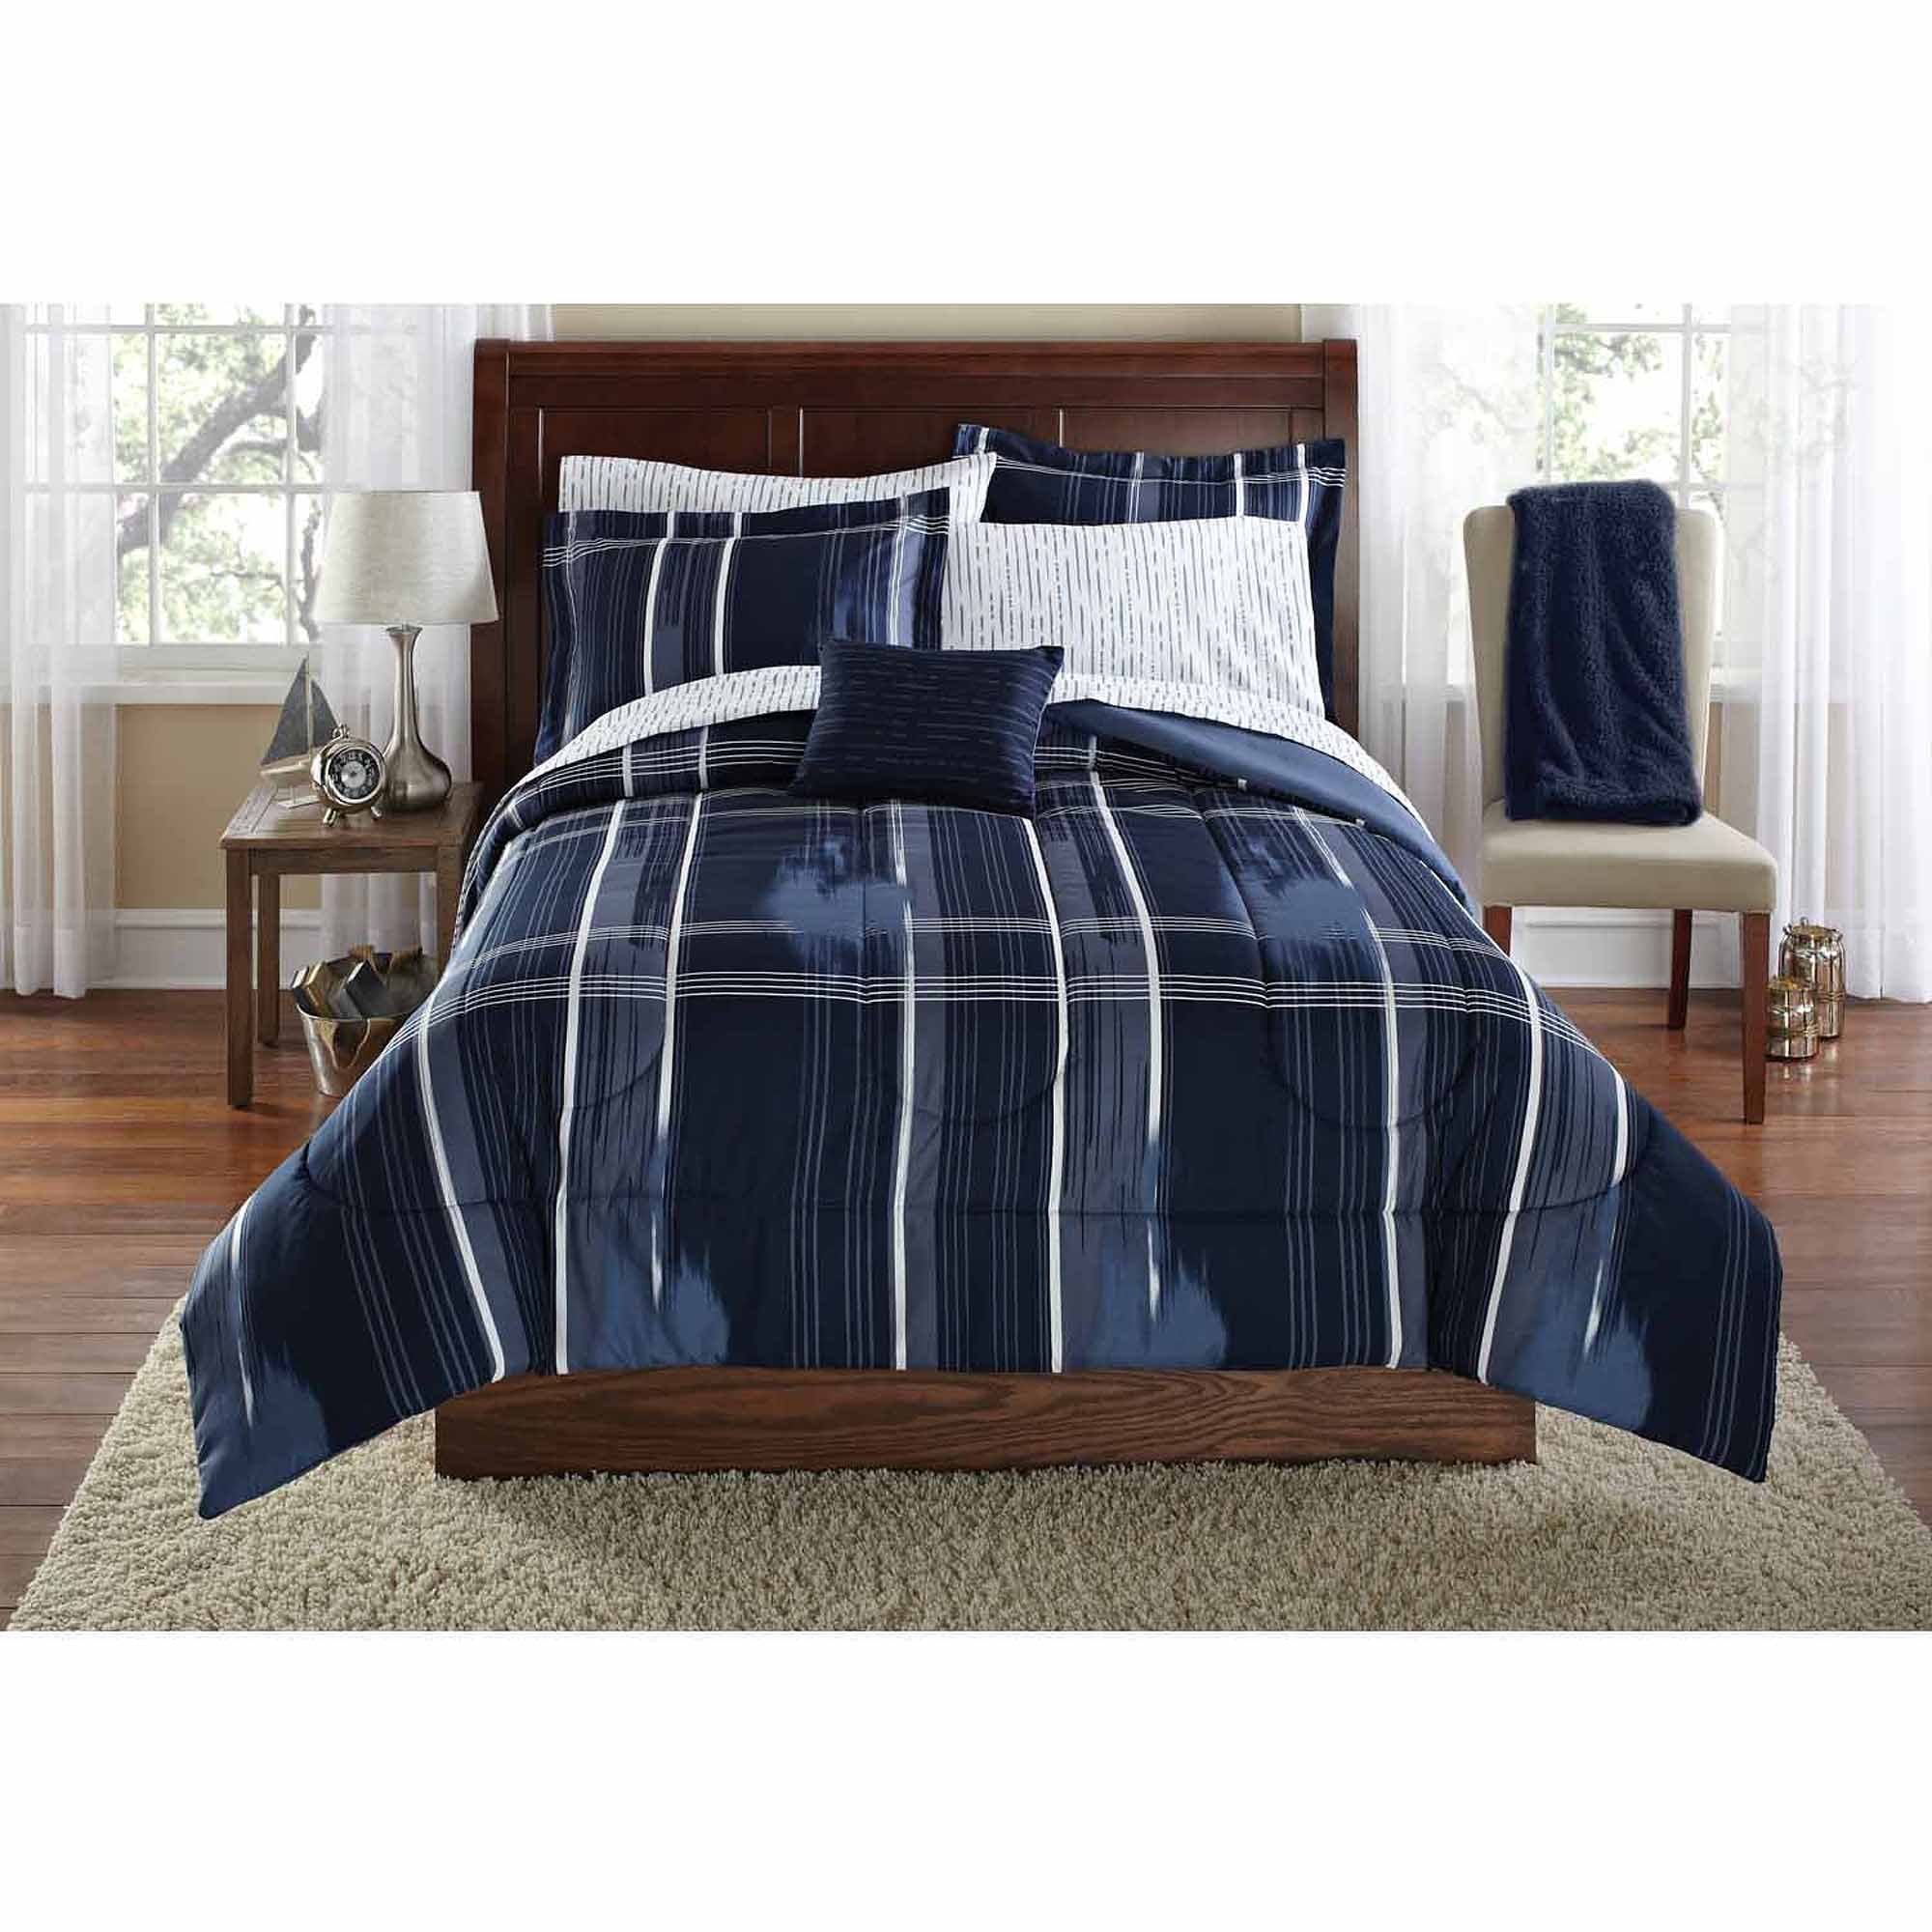 Mainstays Teen Modern Geometric Plaid Navy Blue Reversible Bedding Twin/Twin XL Comforter for Boys (6 Piece in a Bag)